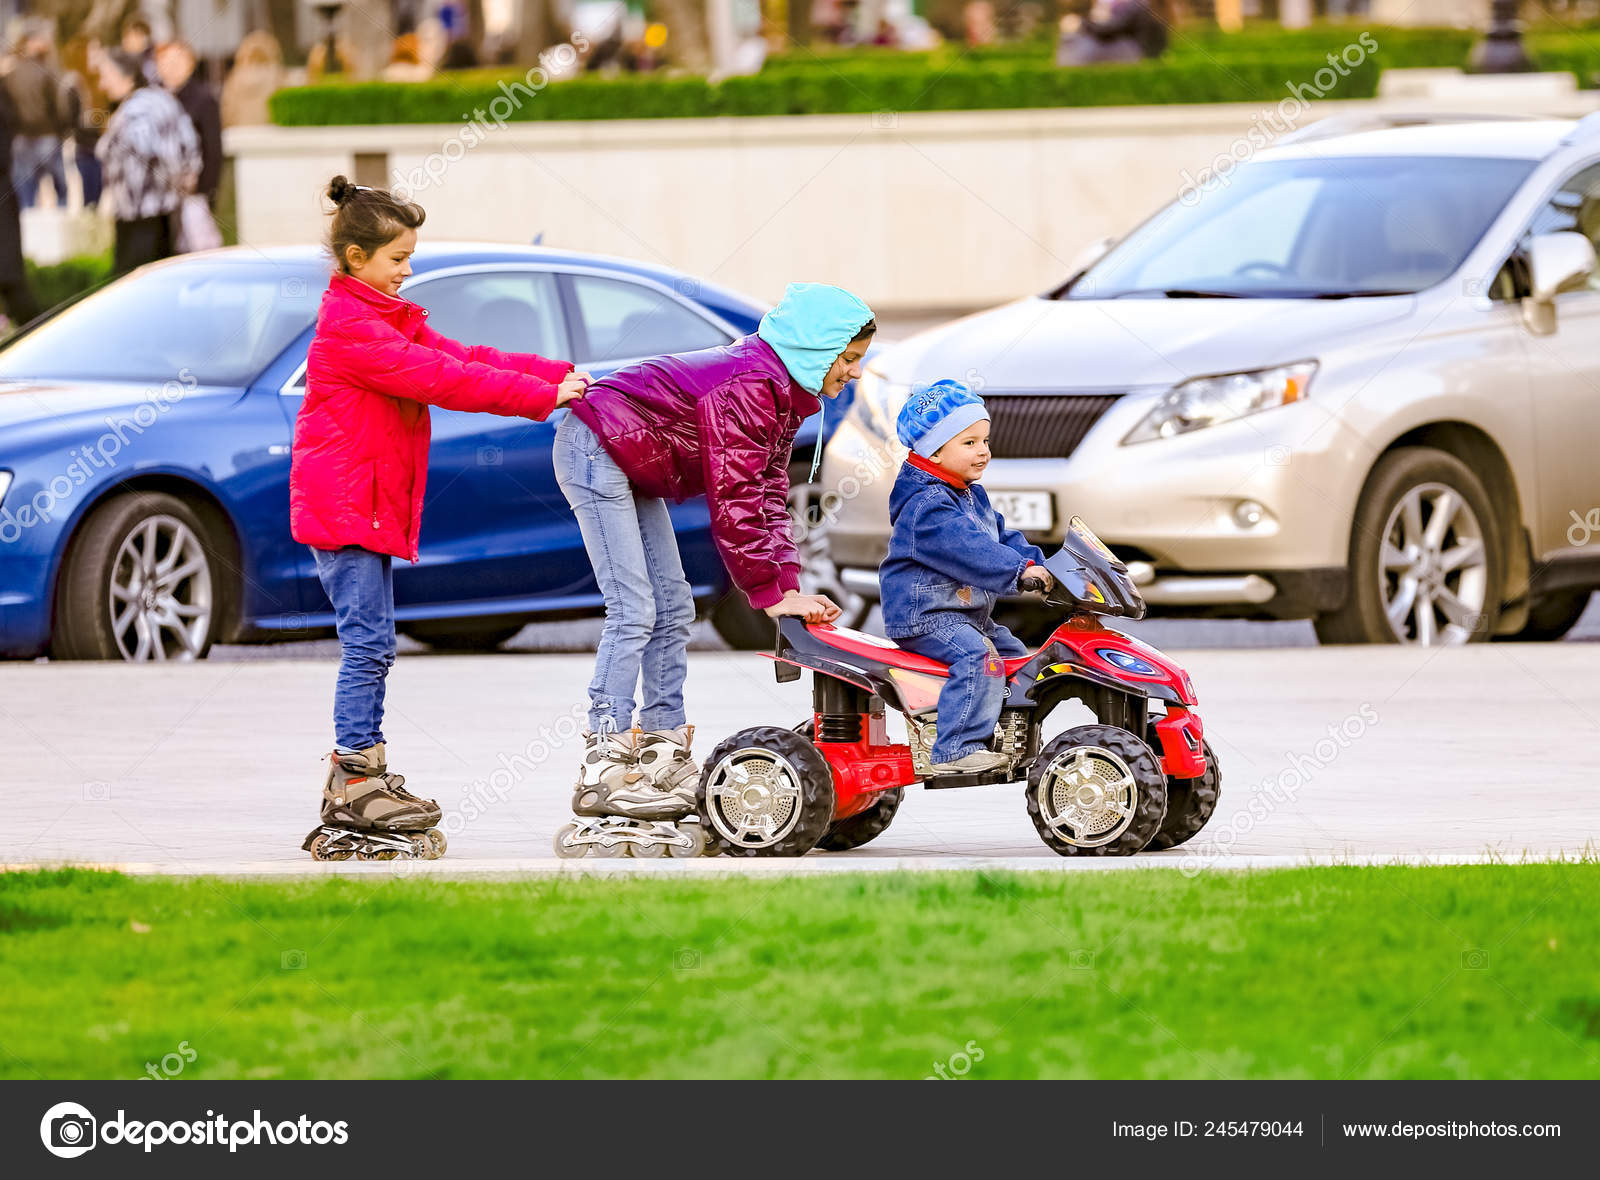 City Park Funny Boy Rides Toy Electric Car His Two Stock Photo C Kravik93 245479044